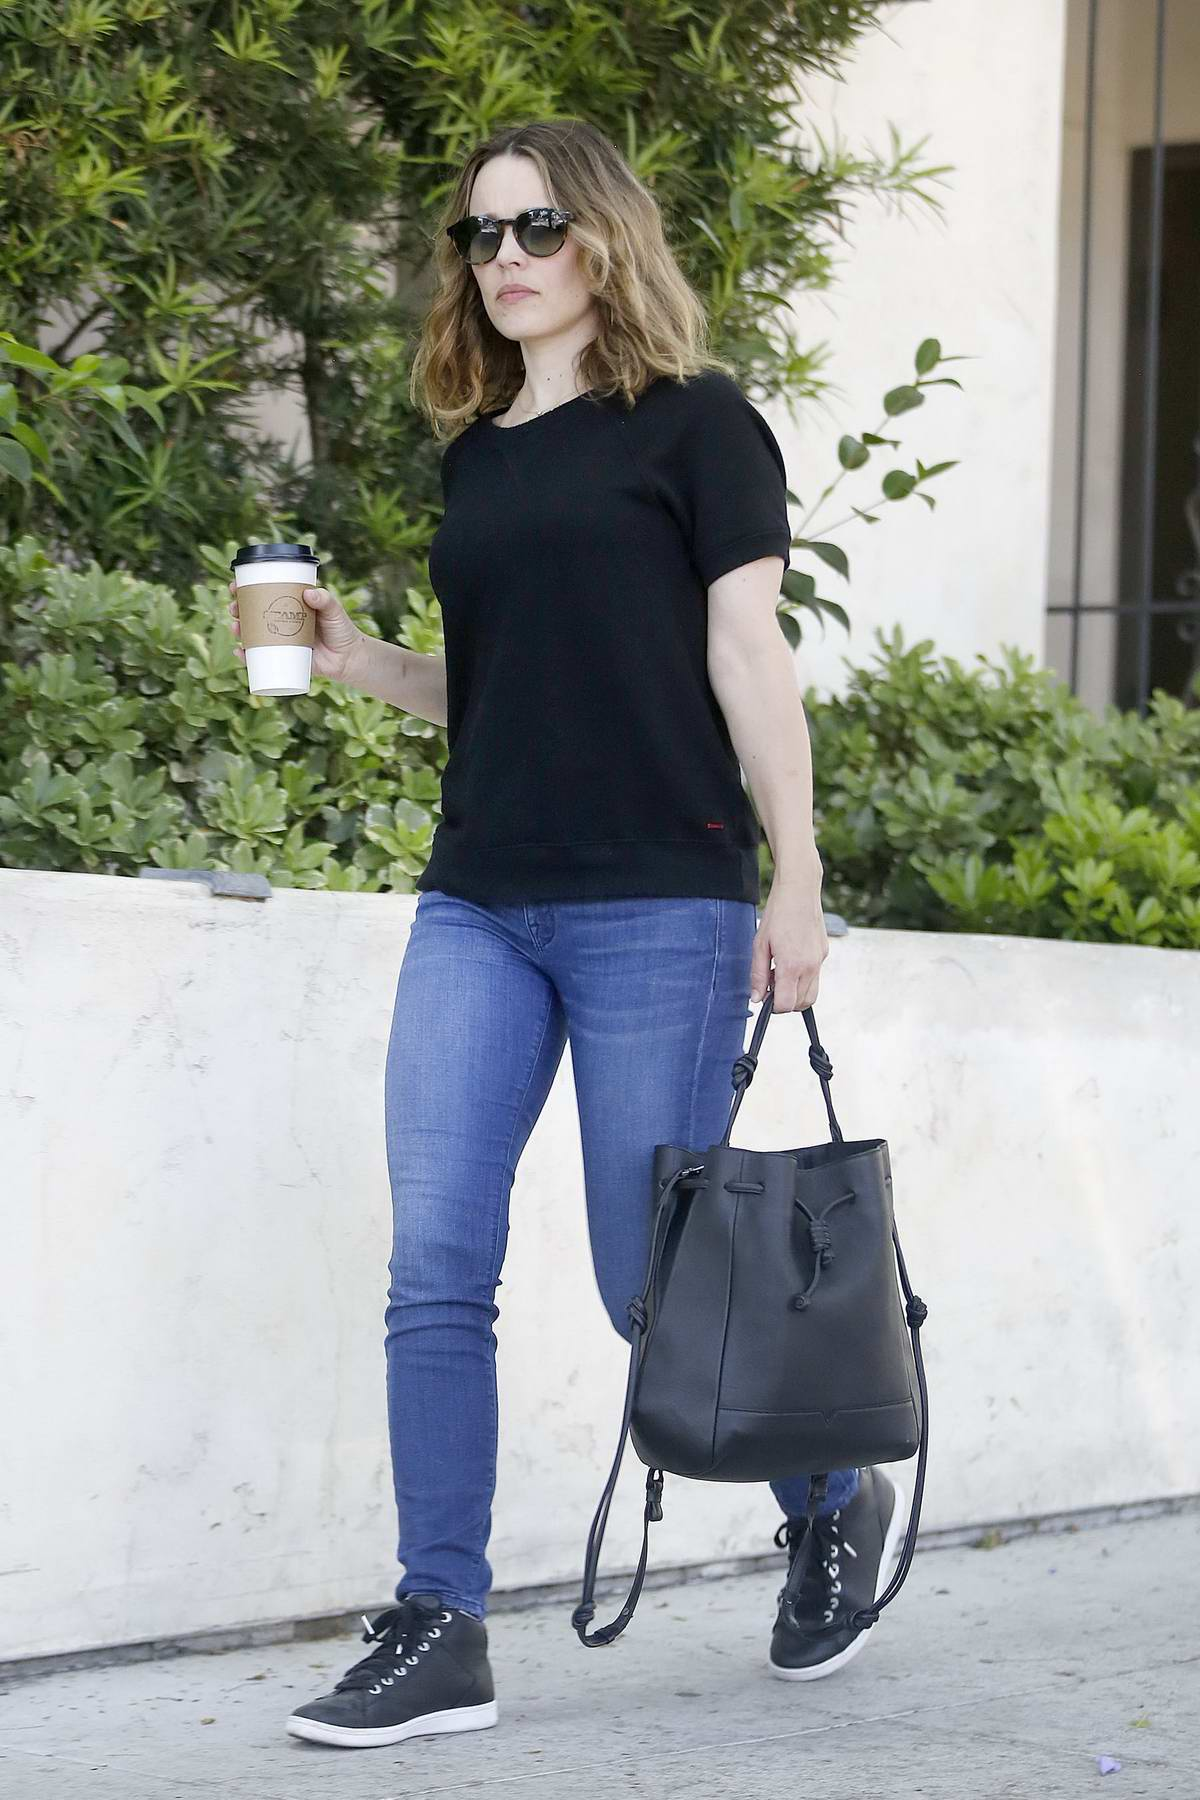 Rachel McAdams out for some grocery shopping in Los Angeles